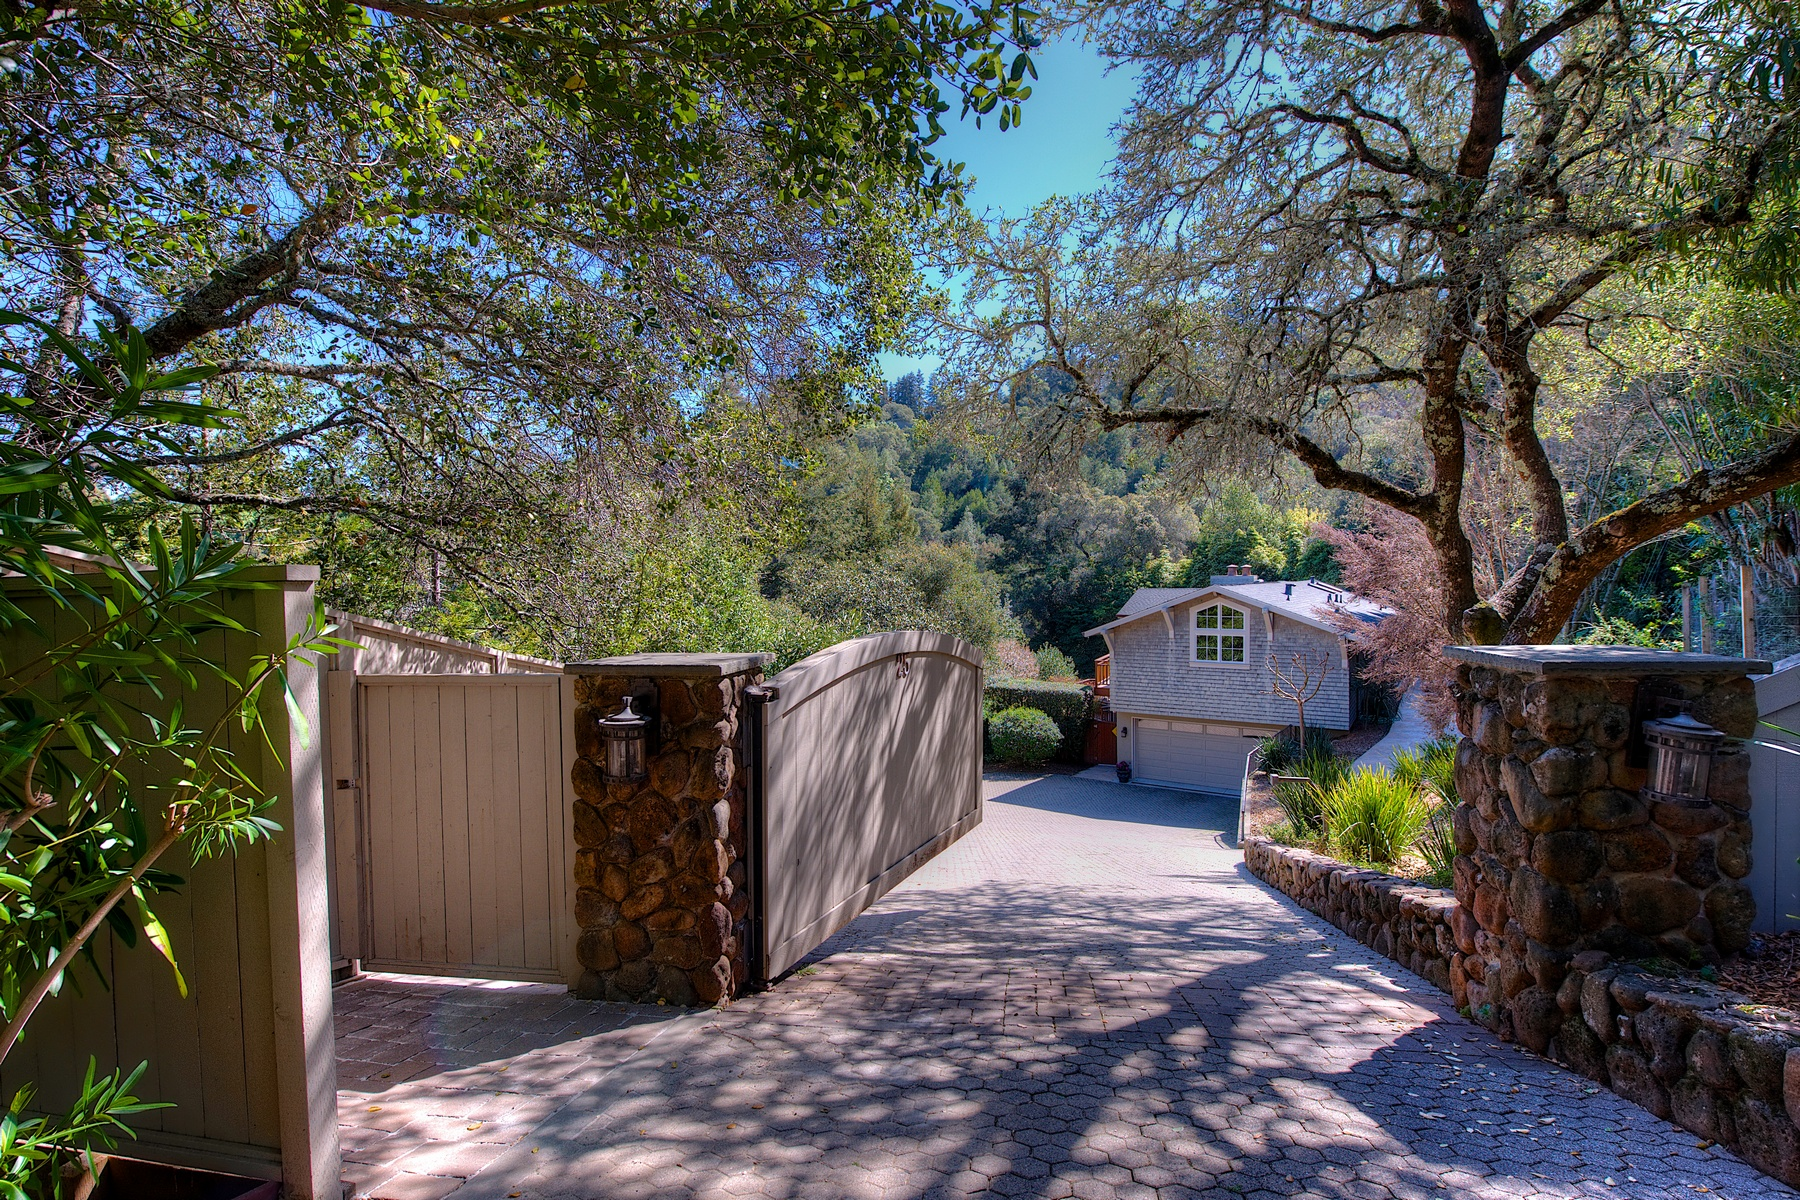 Single Family Home for Sale at Contemporary Craftsman 25 Westwood Dr. Kentfield, California 94904 United States